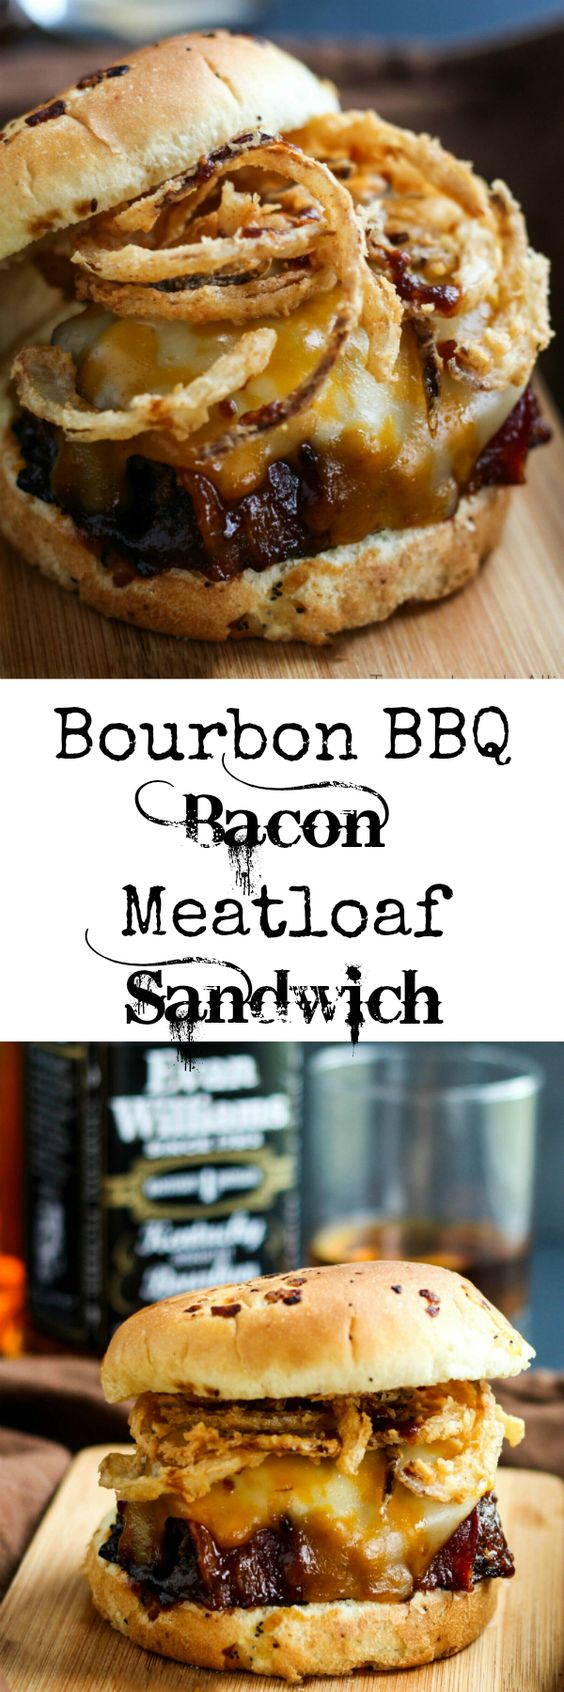 Delicious bacon topped meatloaf grilled in a Bourbon BBQ Sauce and topped off with onion straws makes this Bourbon BBQ Bacon Meatloaf Sandwich a hearty meal! Bourbon BBQ Bacon Meatloaf Sandwich, wow say that three times fast. I know the name is long, but I couldn't leave anything out when[Read more]